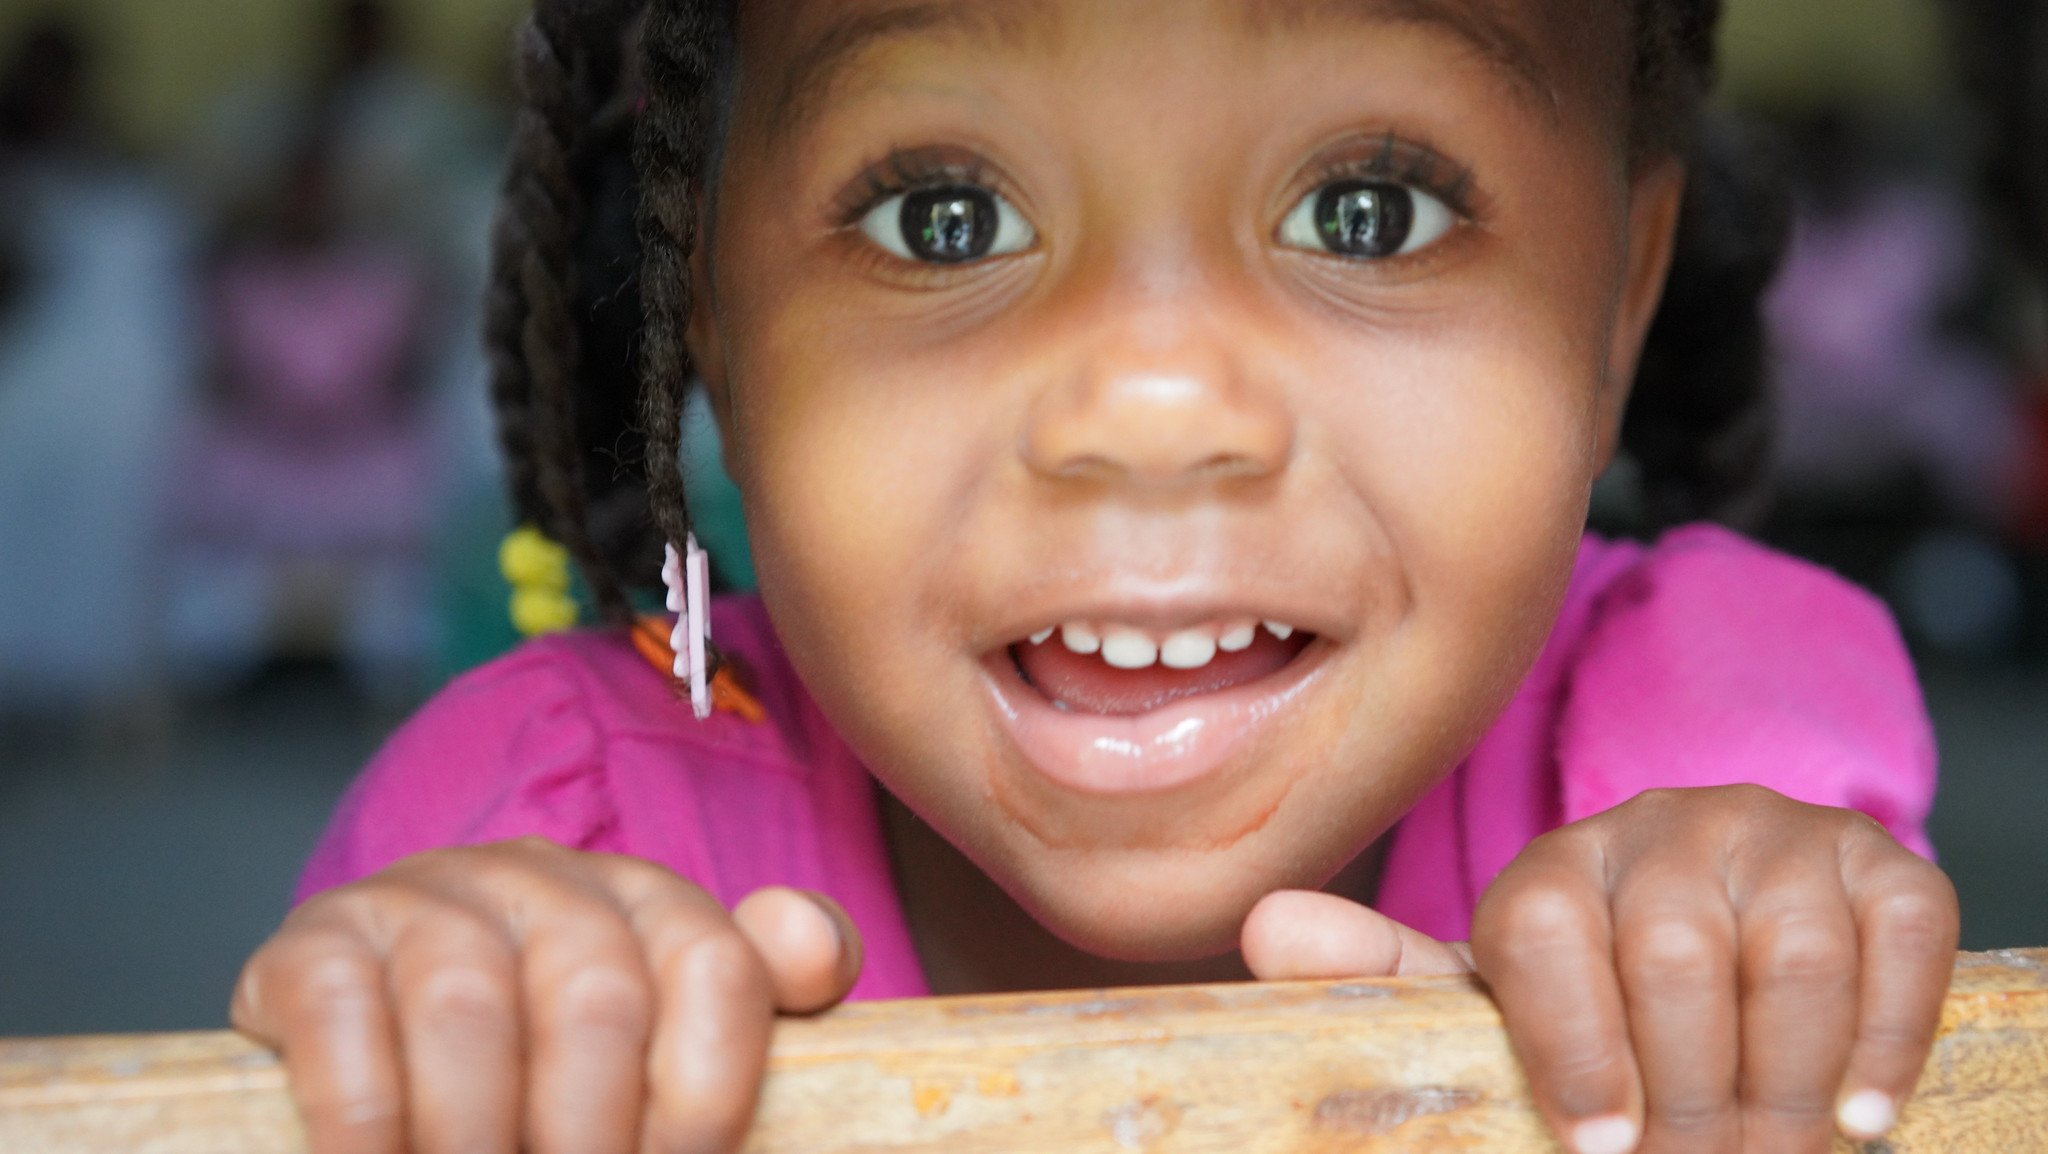 One of our angels, Estefika, in Haiti